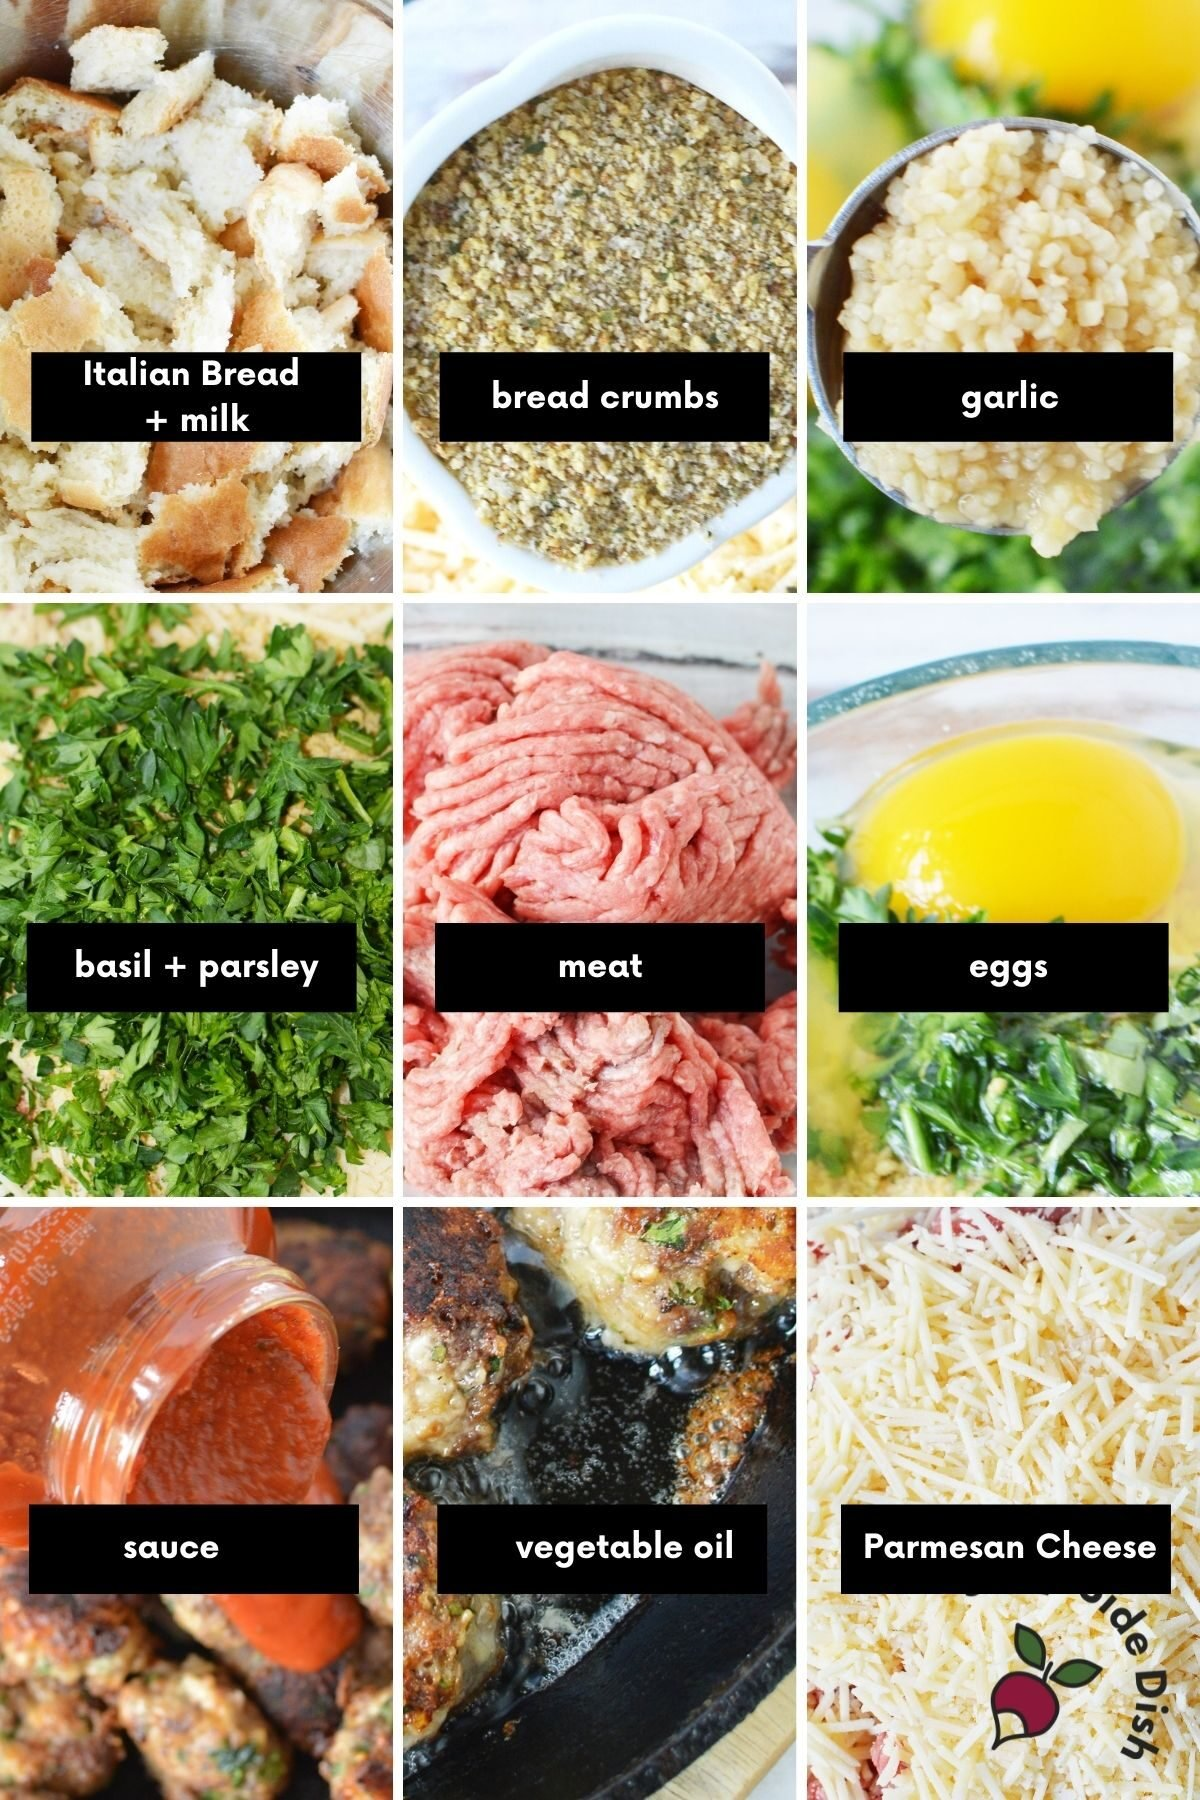 9 image collage of meatball ingredients laid out and labeled.